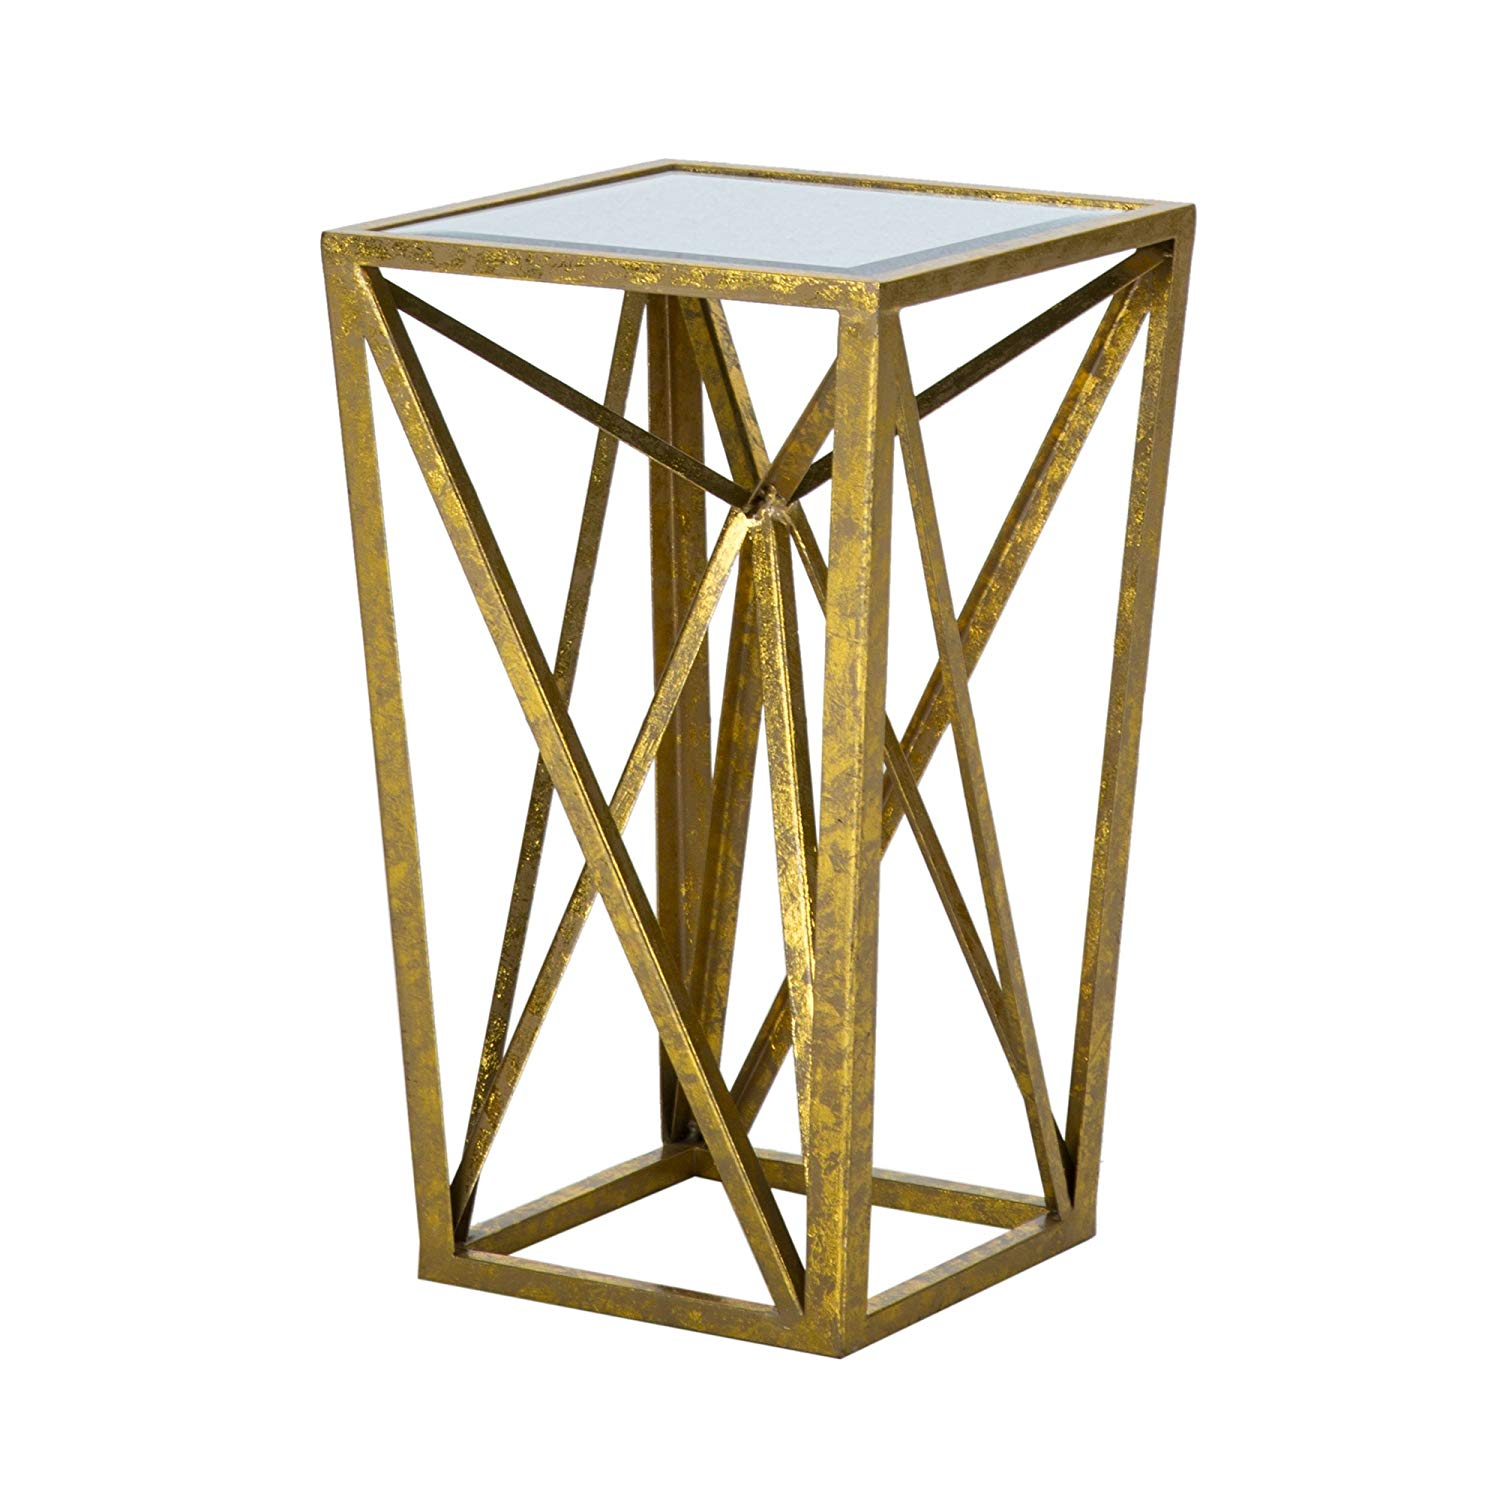 madison park zee accent tables mirror glass metal furniture side table gold angular design modern style end piece top hollow round pink lamp garden storage bench pottery barn bath